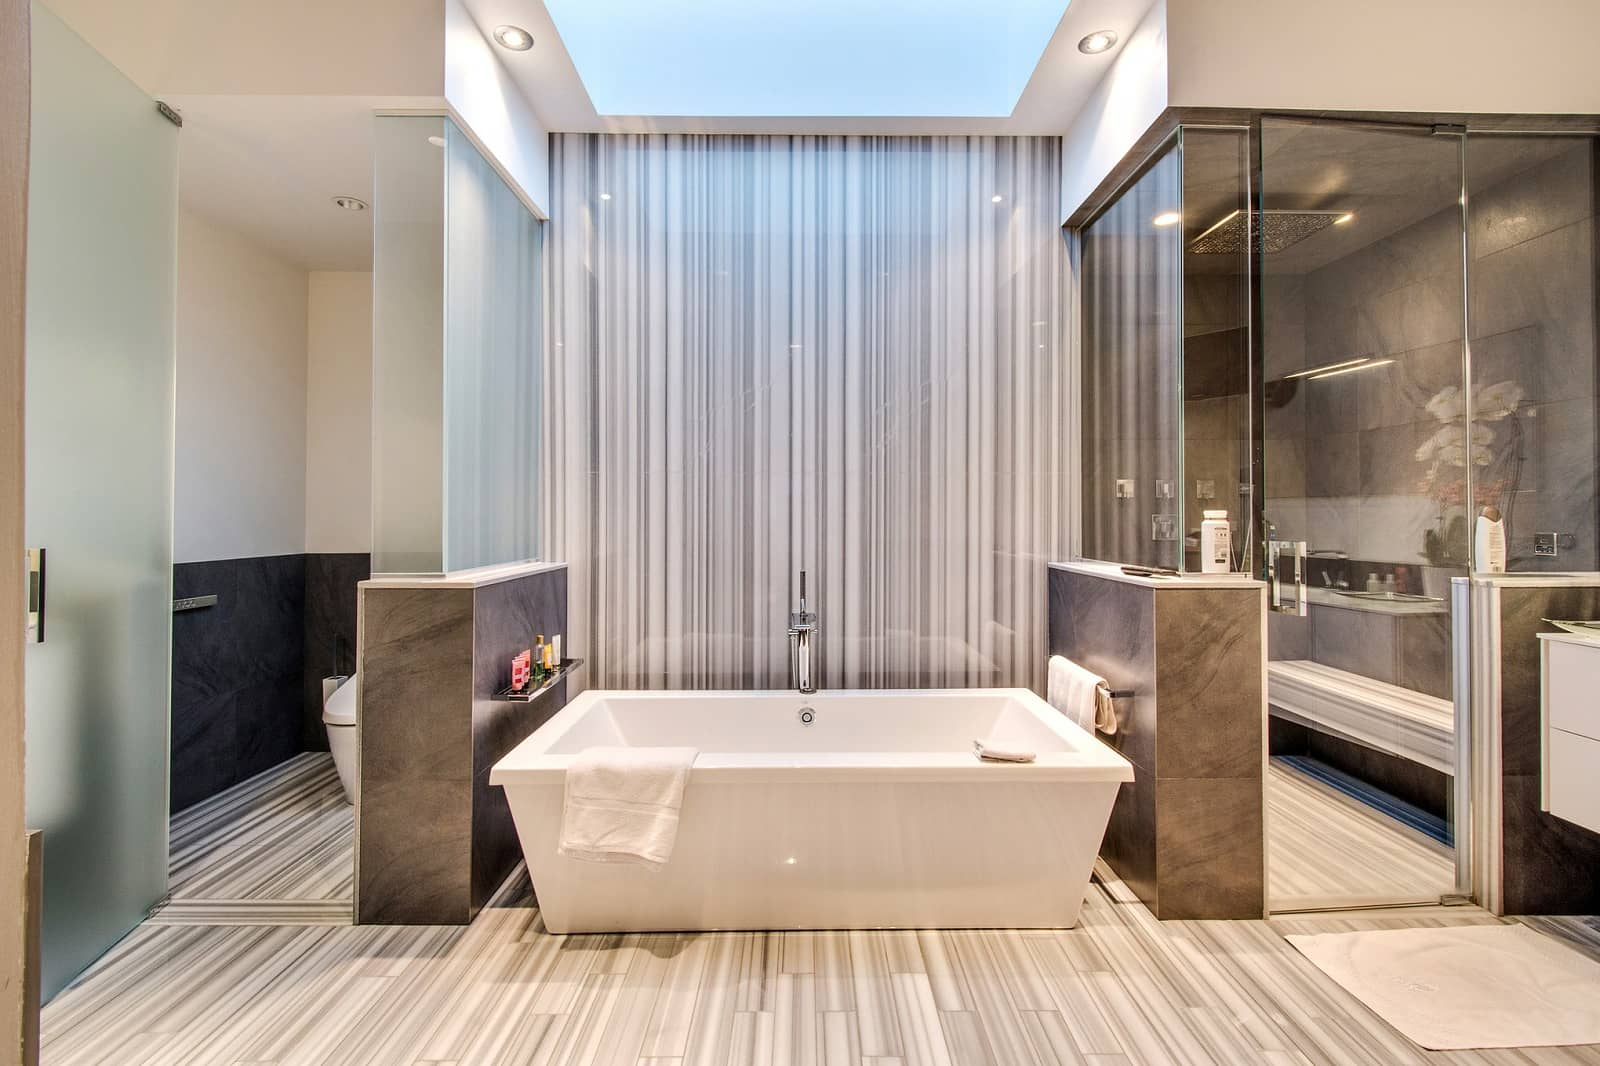 Real Estate Photography in Chicago - IL - USA - Bathroom View